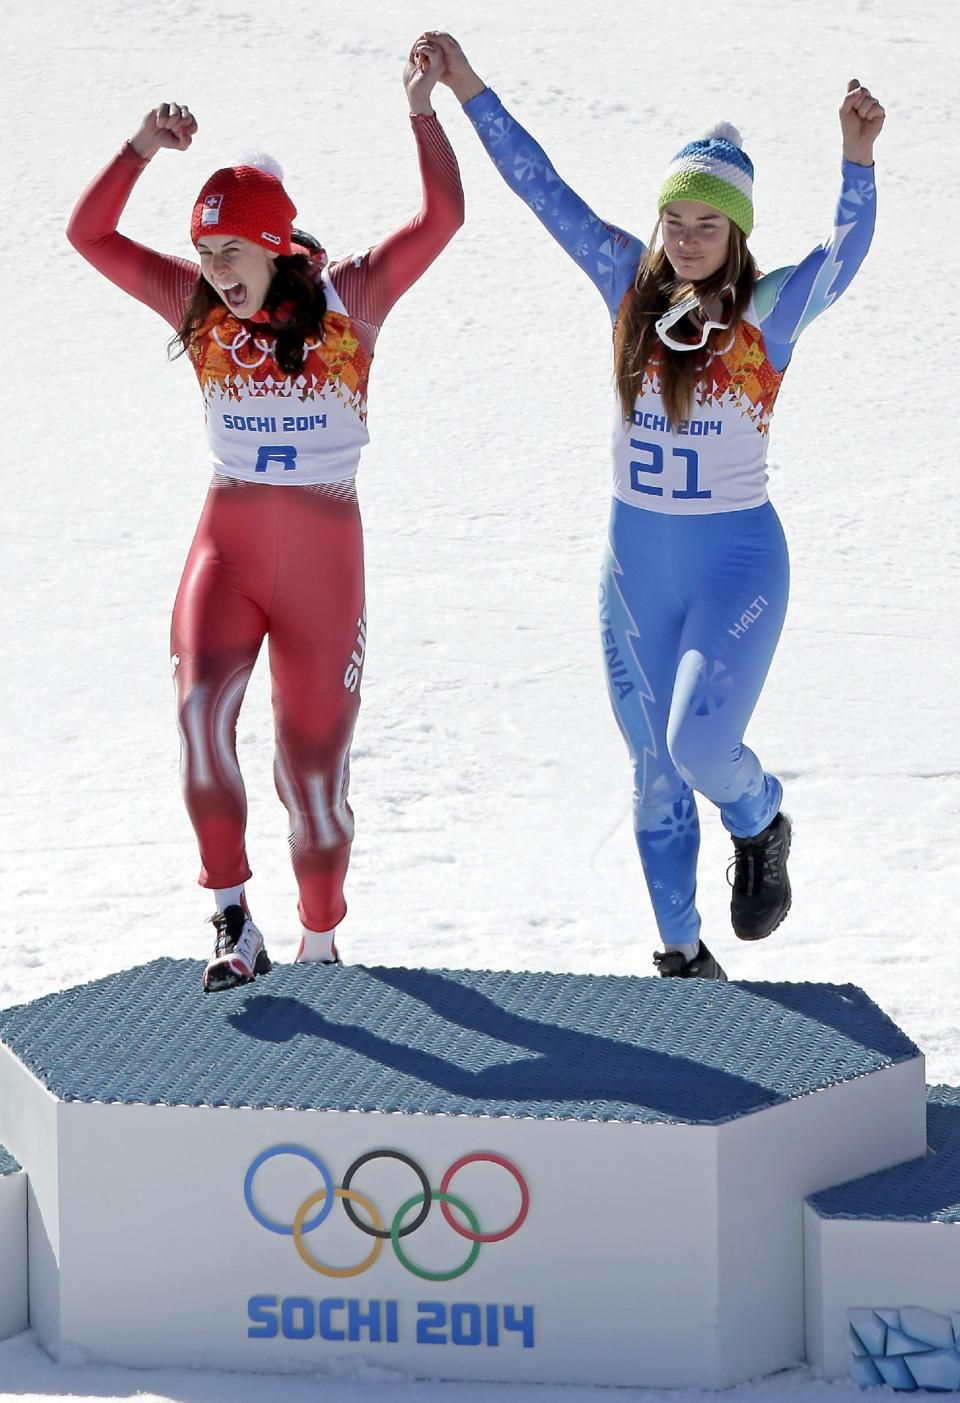 Women's downhill gold medal winners Switzerland's Dominique Gisin, left, and Slovenia's Tina Maze step onto the podium together during a flower ceremony at the Sochi 2014 Winter Olympics, Wednesday, Feb. 12, 2014, in Krasnaya Polyana, Russia. (AP Photo/Charlie Riedel)